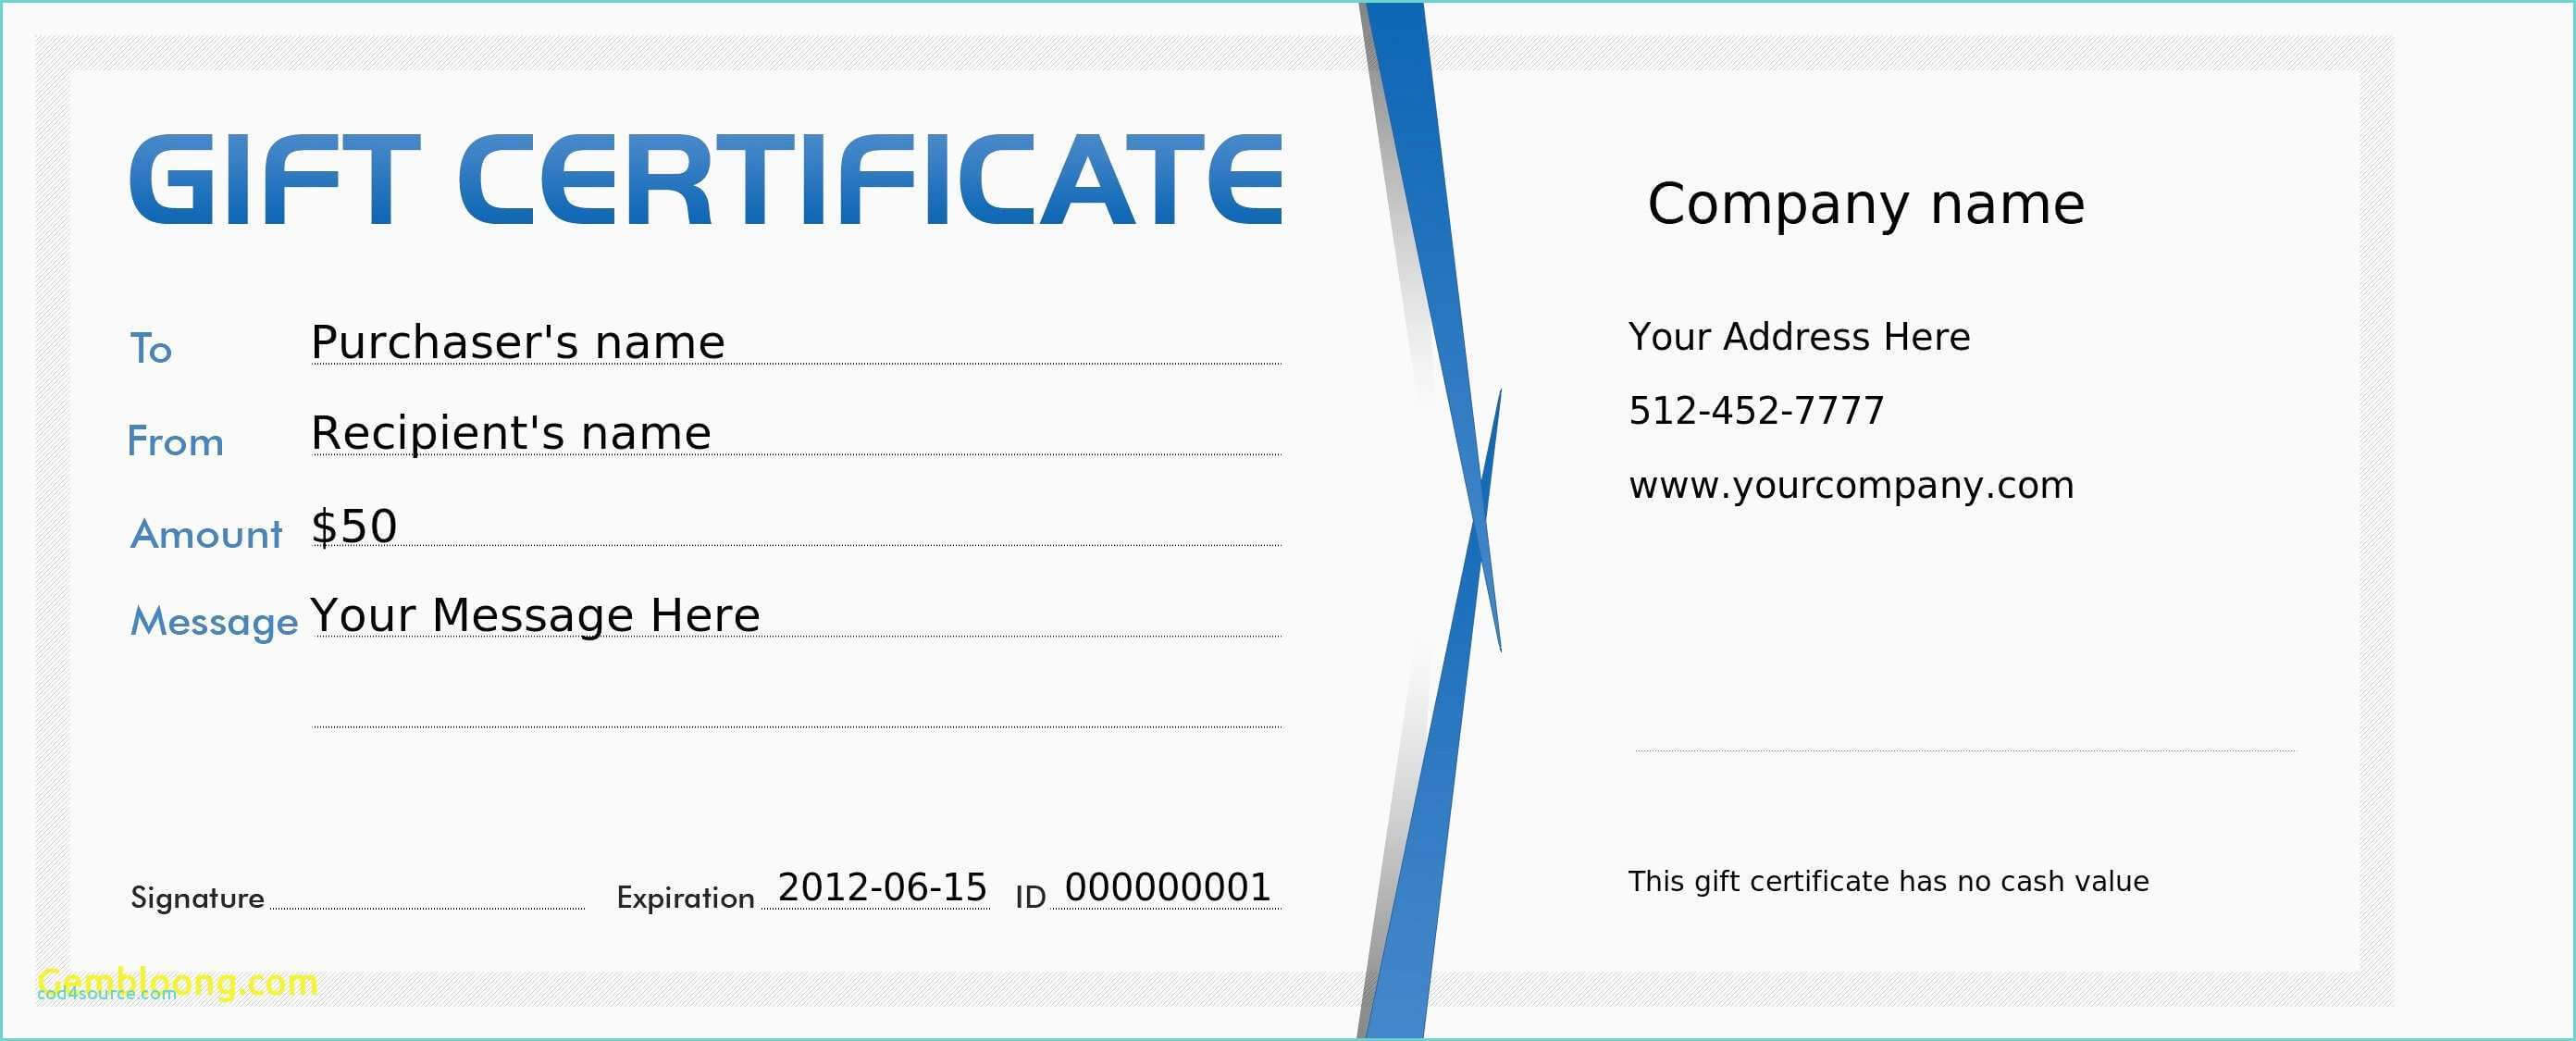 Microsoft Publisher Gift Certificate Template – Teplates For Within Gift Certificate Template Publisher